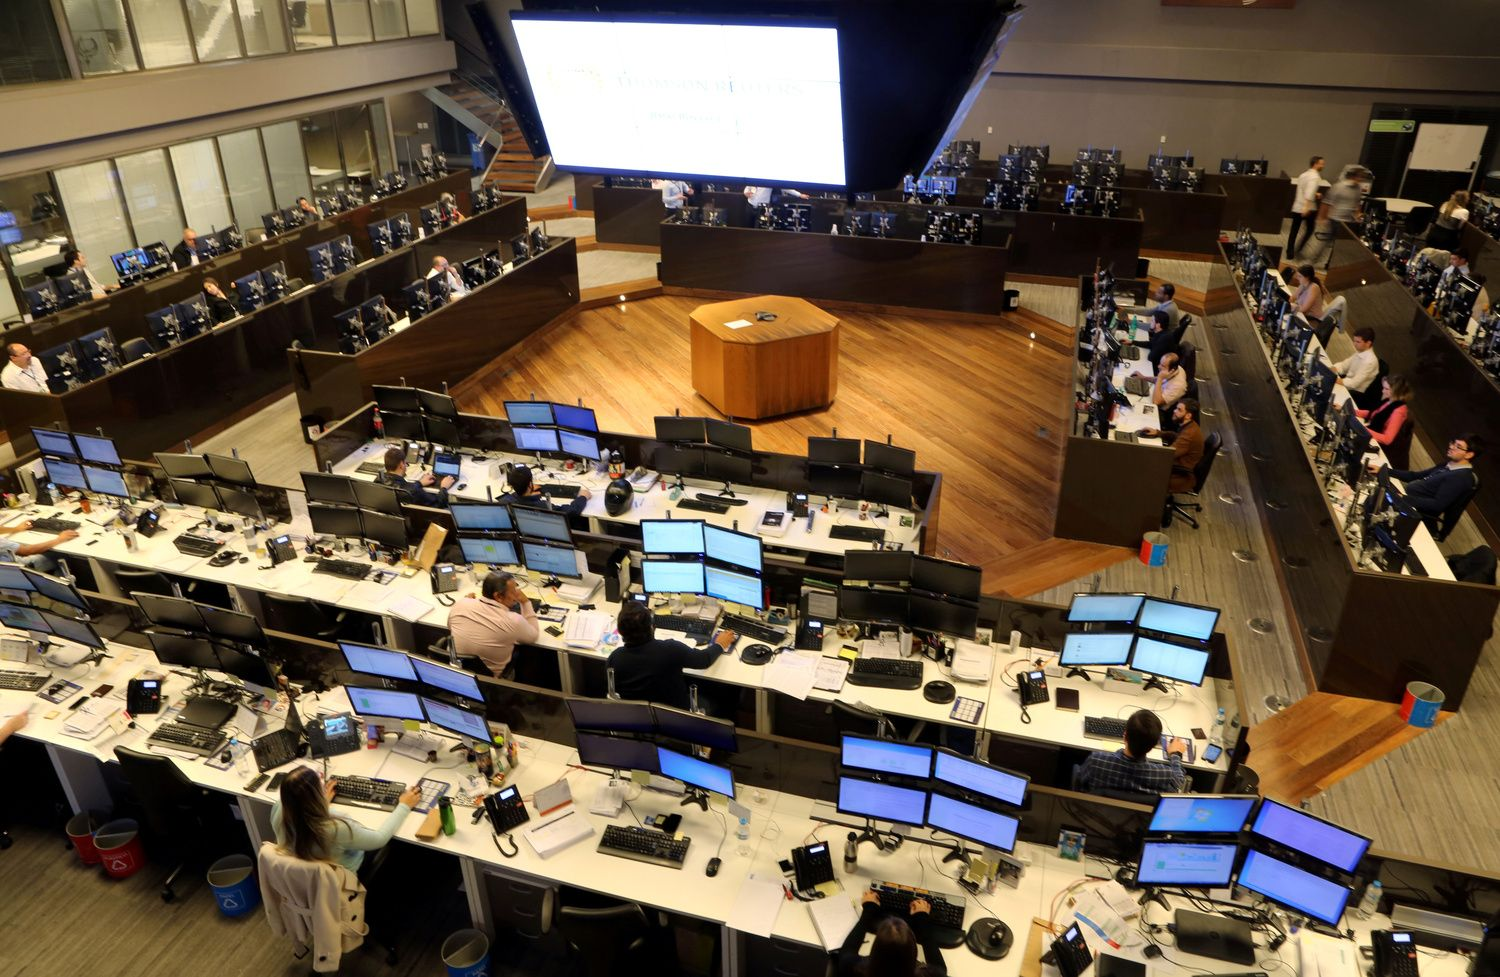 Stocks in Asia Mixed; Treasuries Steady Before Fed: Markets Wrap